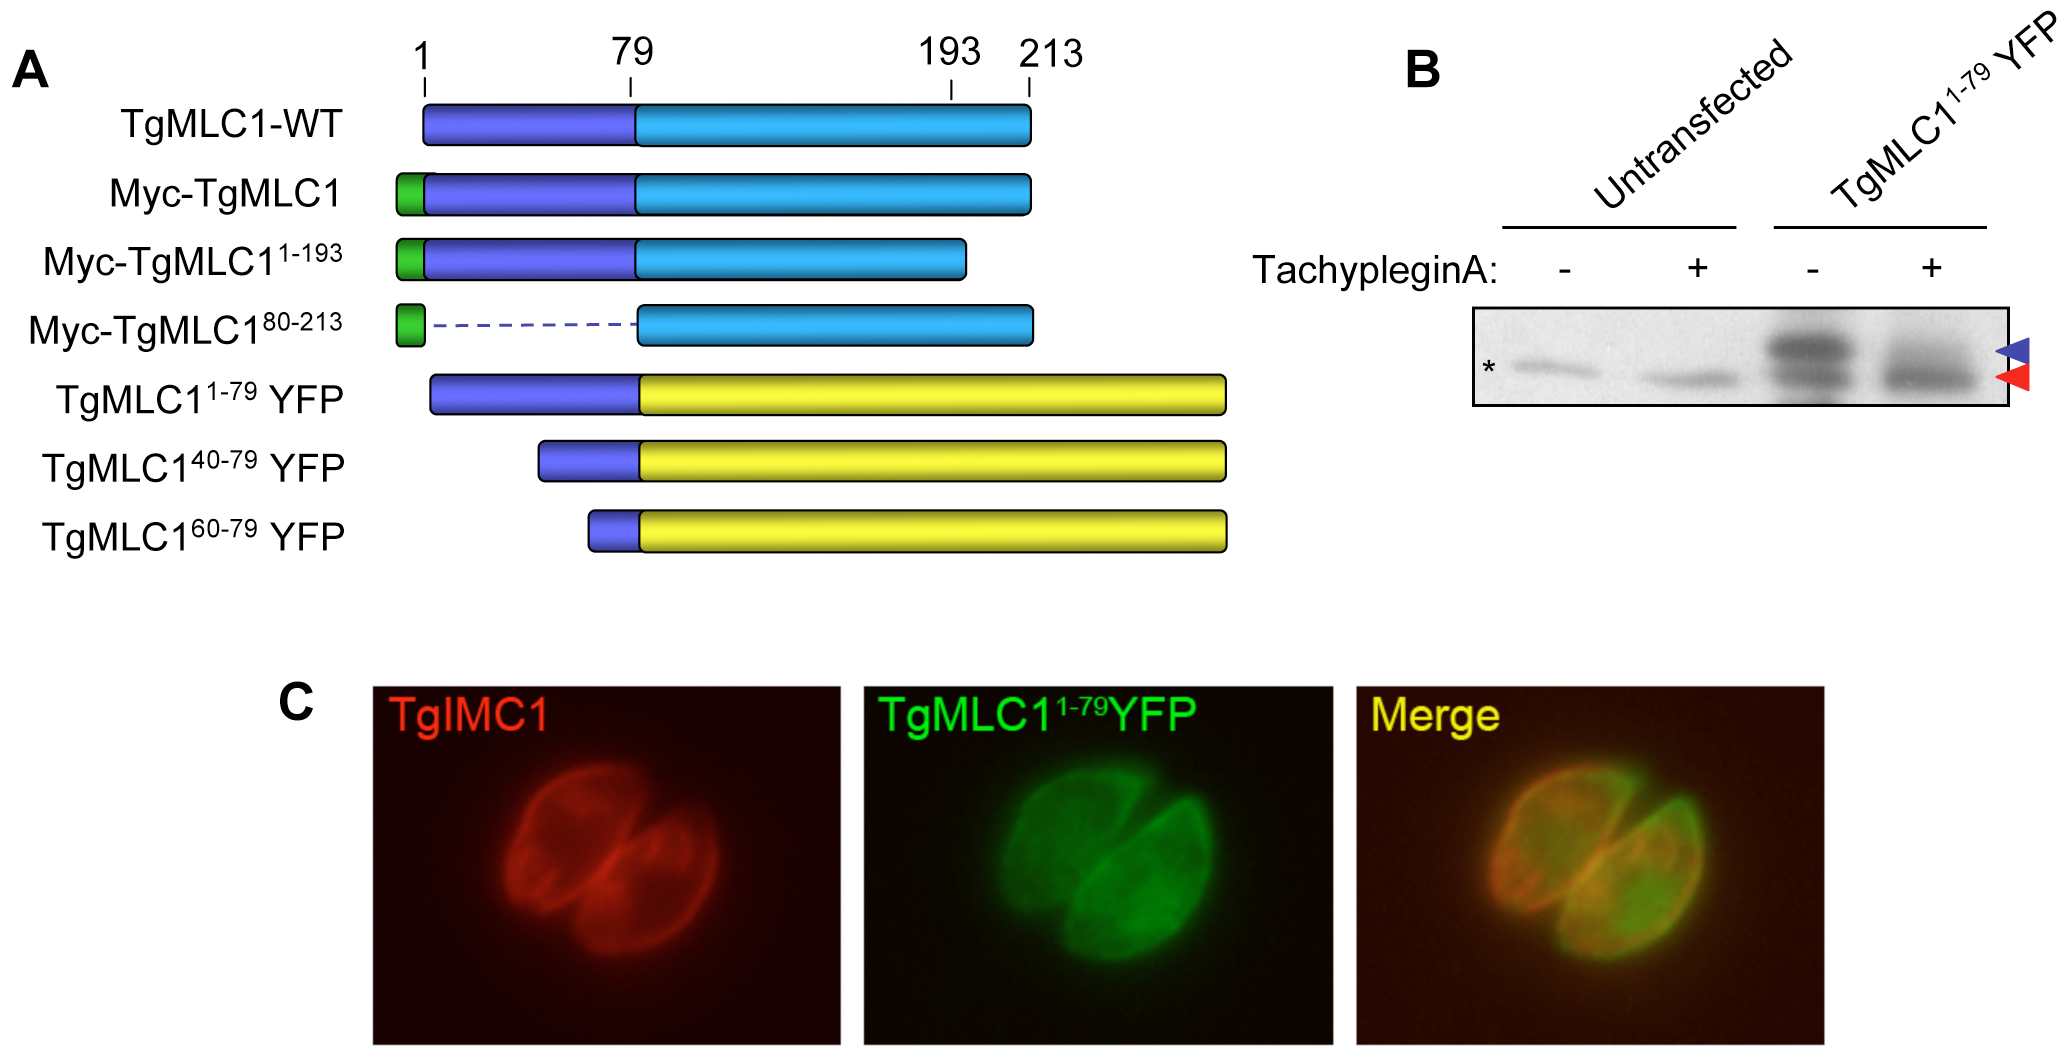 Amino acids 1–79 of TgMLC1 are sufficient for the tachypleginA-induced mobility shift.